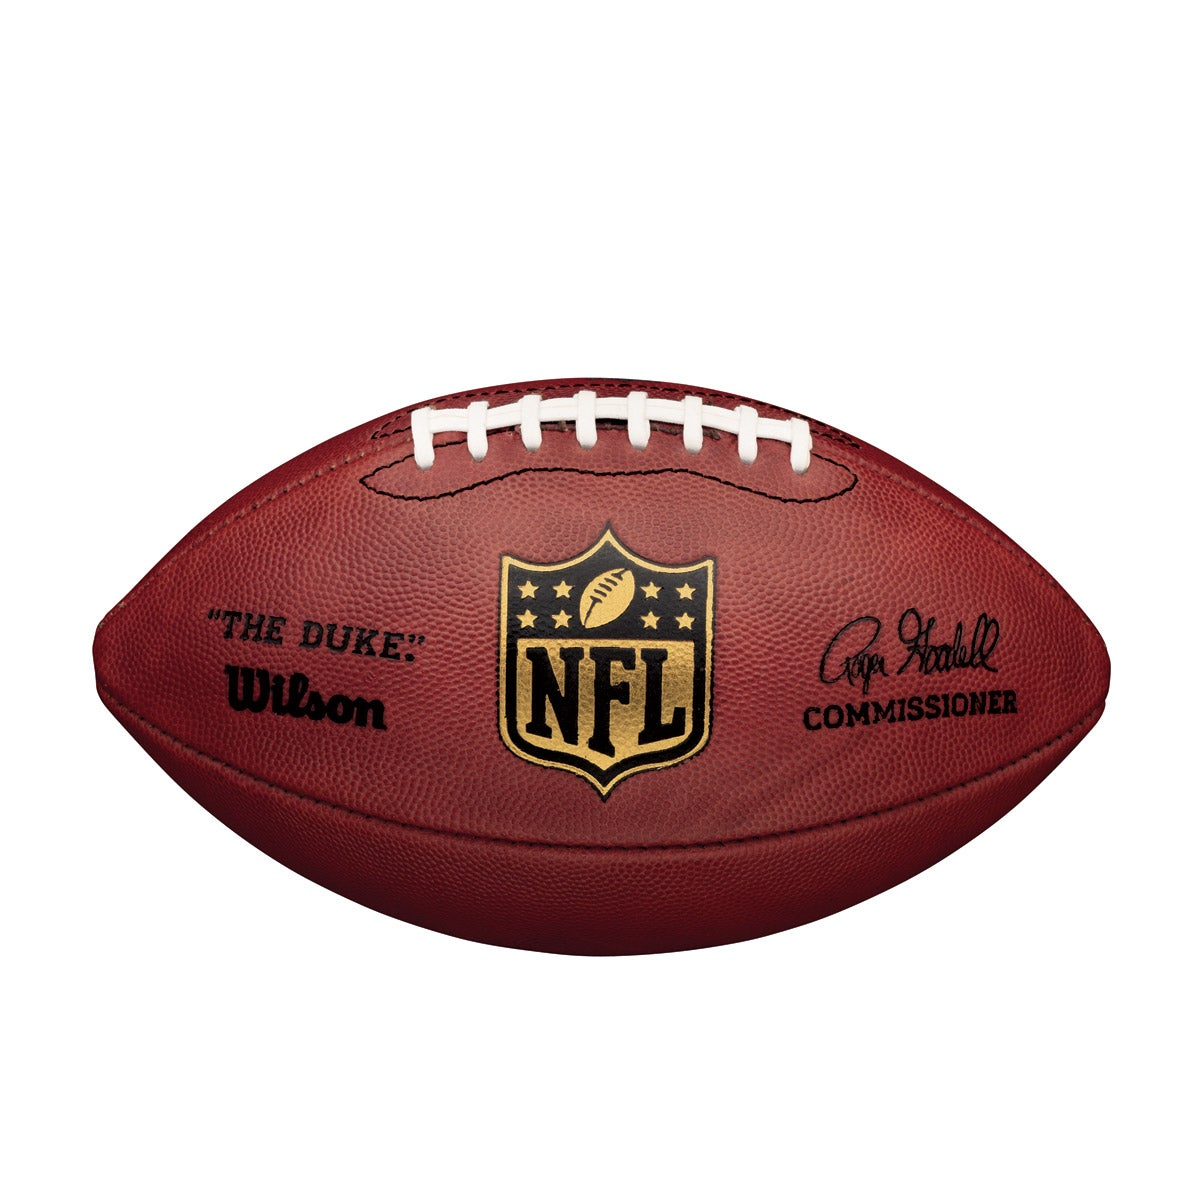 official nfl football the duke wilson sporting goods